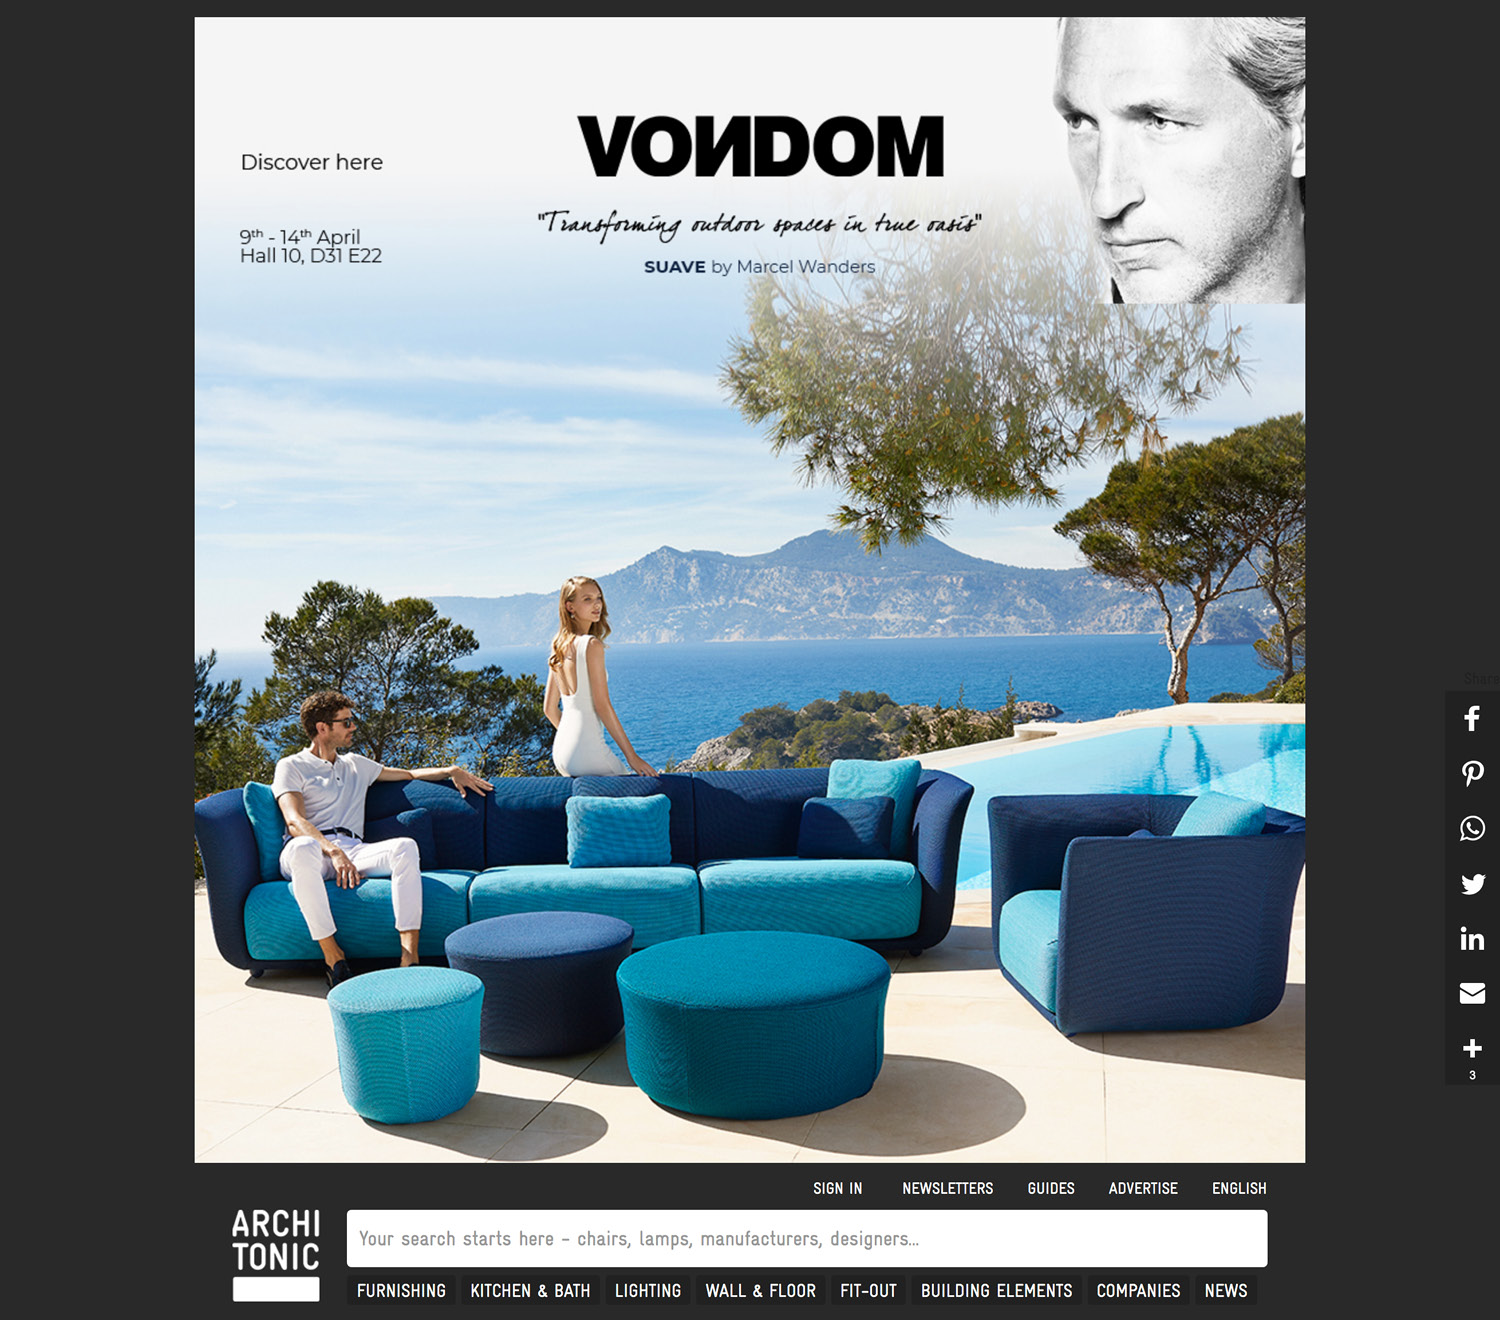 billboard-expandable_vondom_expanded.jpg